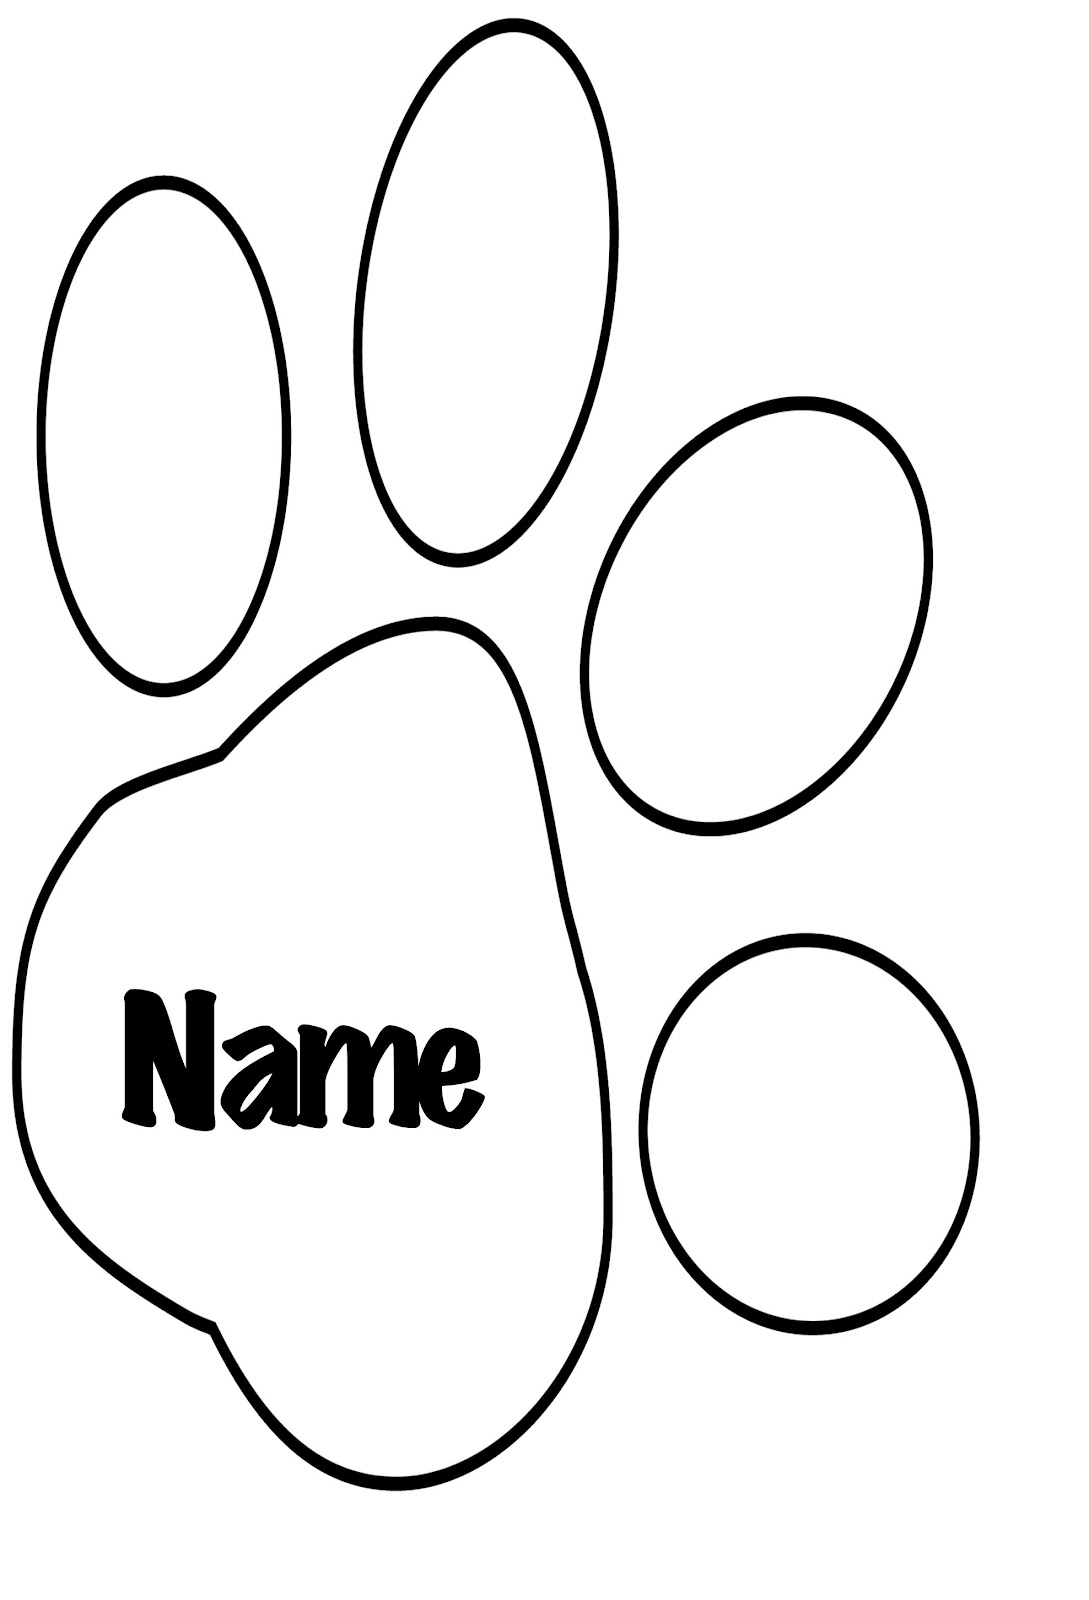 It is a photo of Eloquent Dog Paw Print Stencil Printable Free